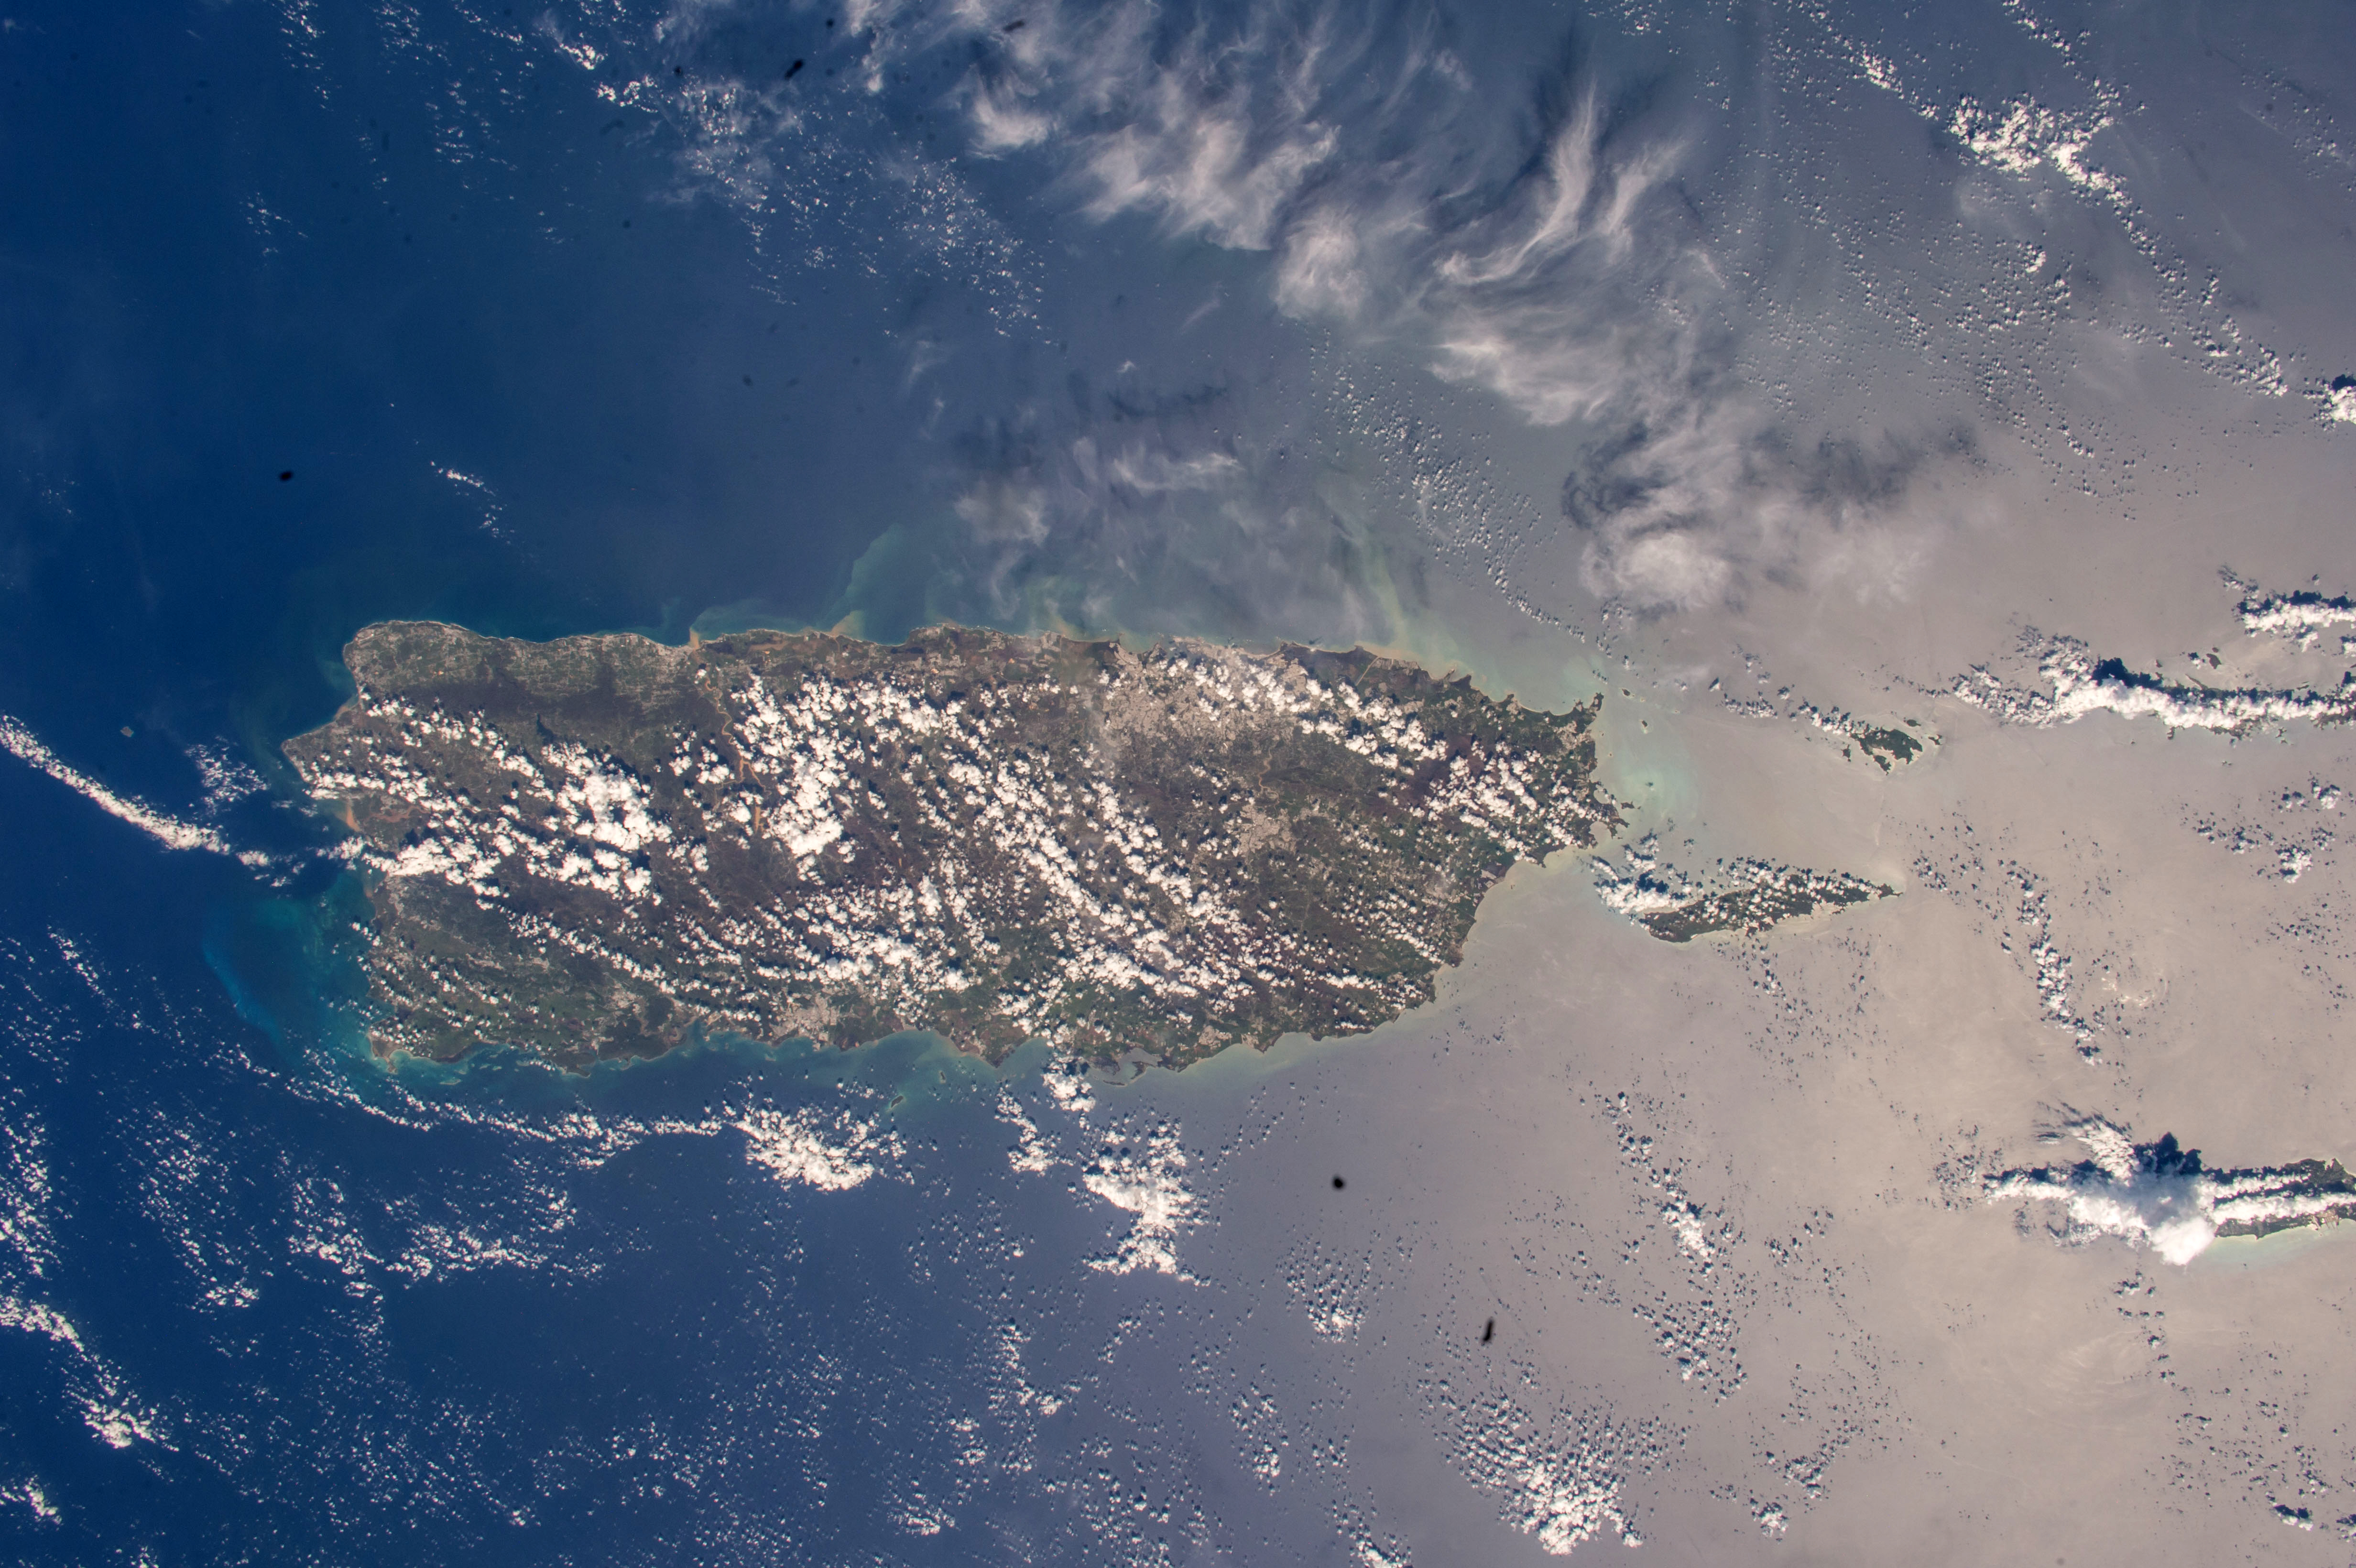 Puerto Rico From the Space Station